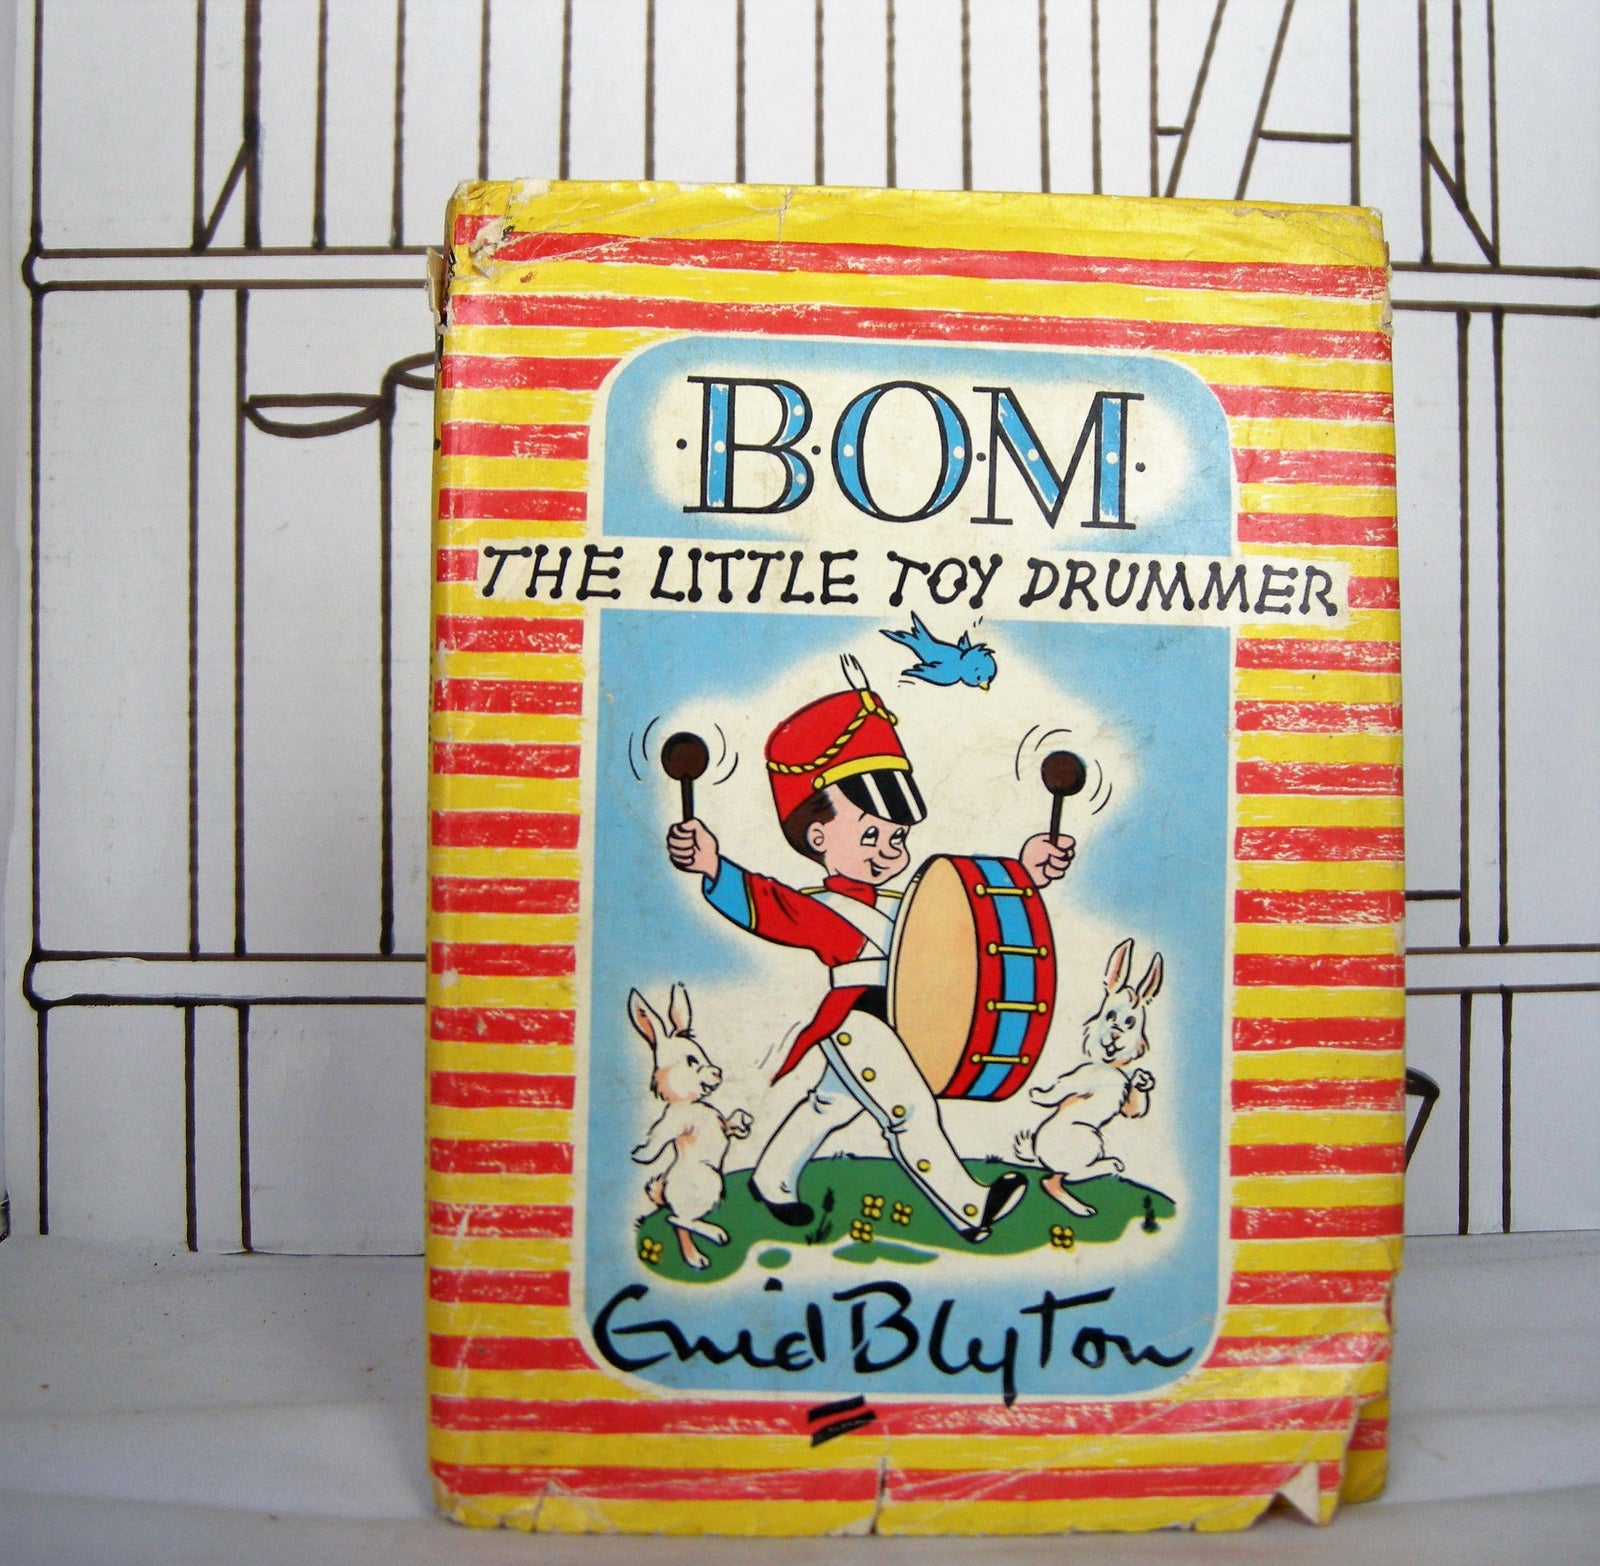 Bom the Little Toy Drummer by Enid Blyton (Vintage, Children, Christmas) - Bluebell Abbey